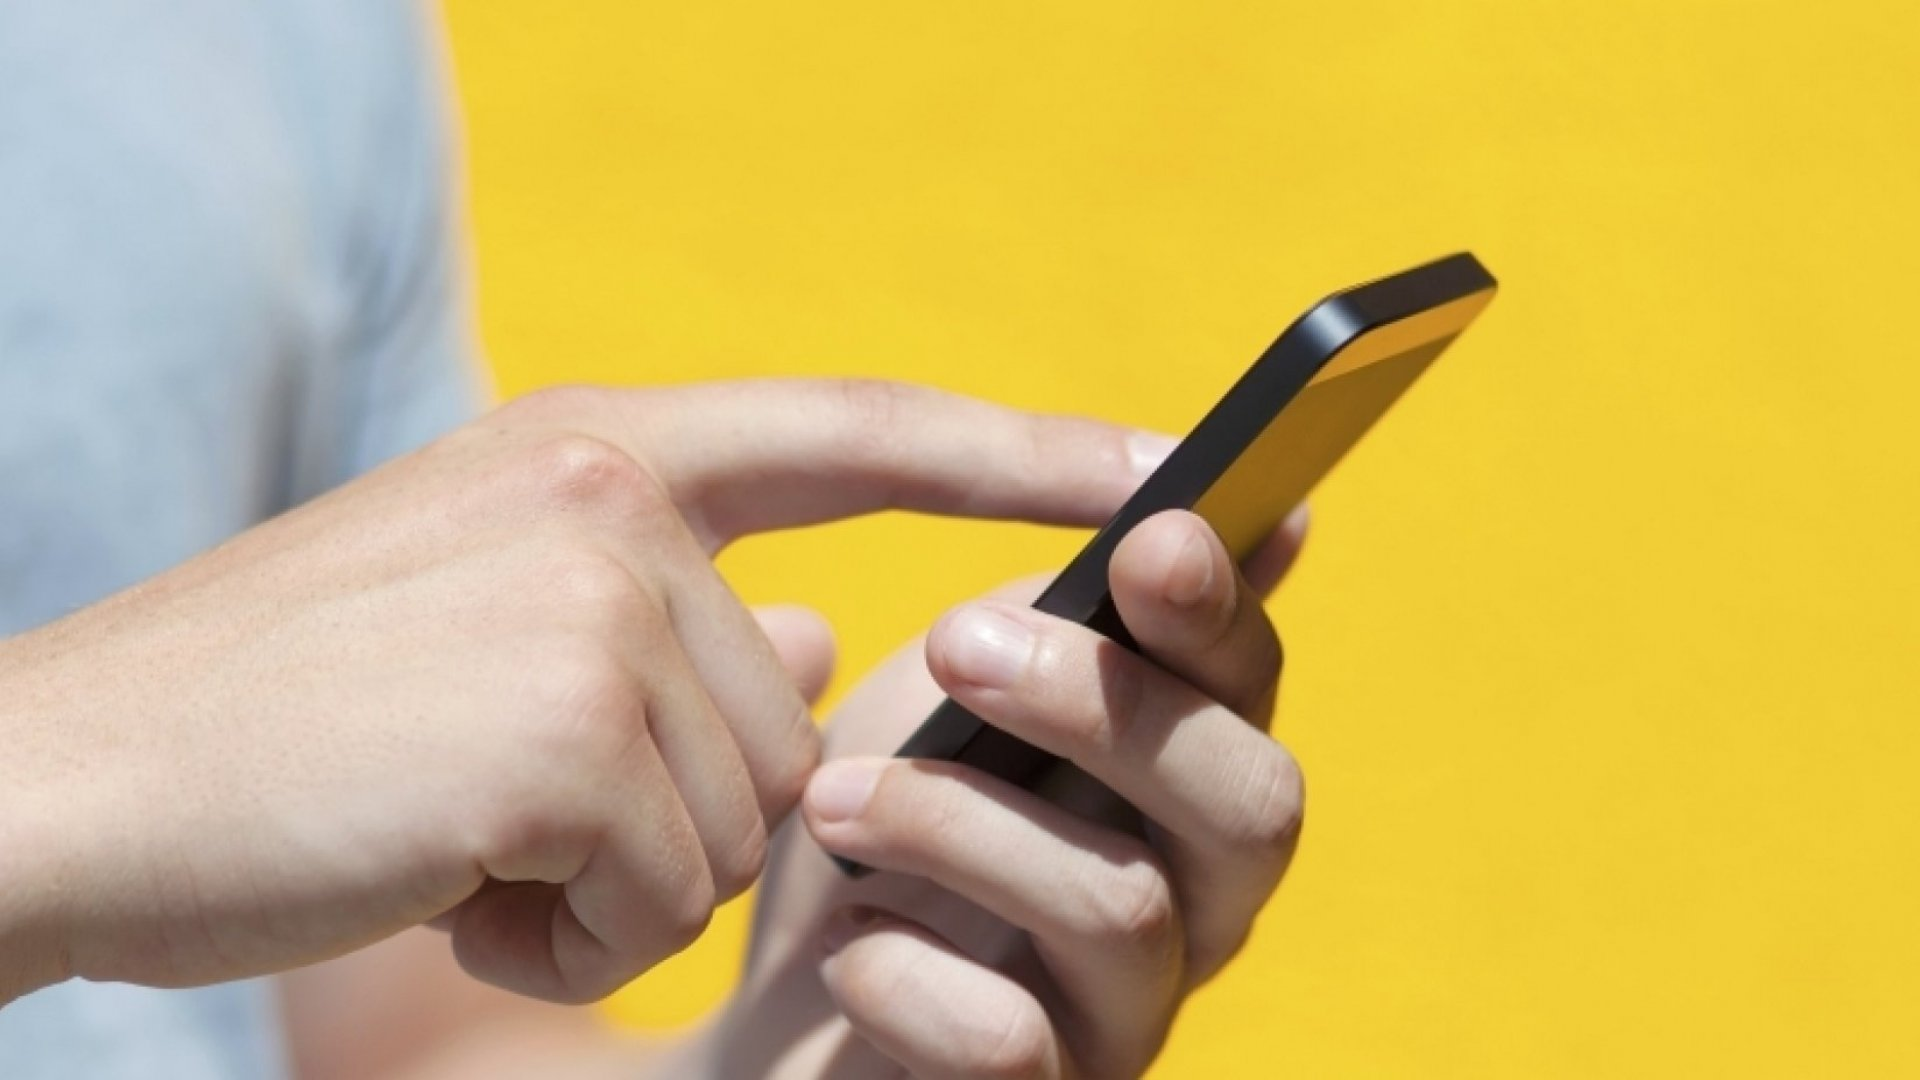 The Art and Science of Highly Clickable Mobile Ads